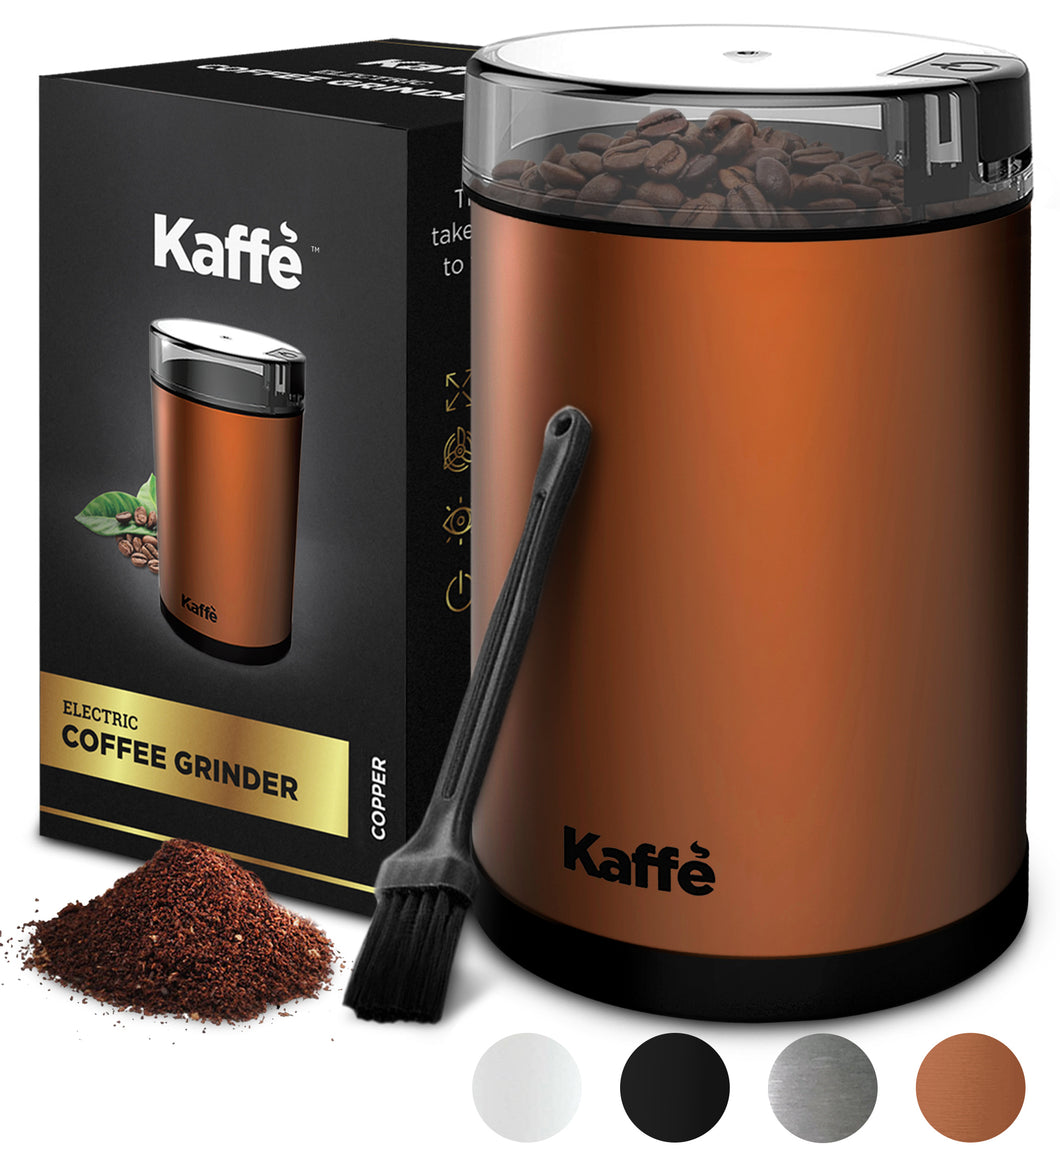 KF2030 Electric Coffee Grinder by Kaffe - Copper - 3 oz Capacity with Easy On/Off Button